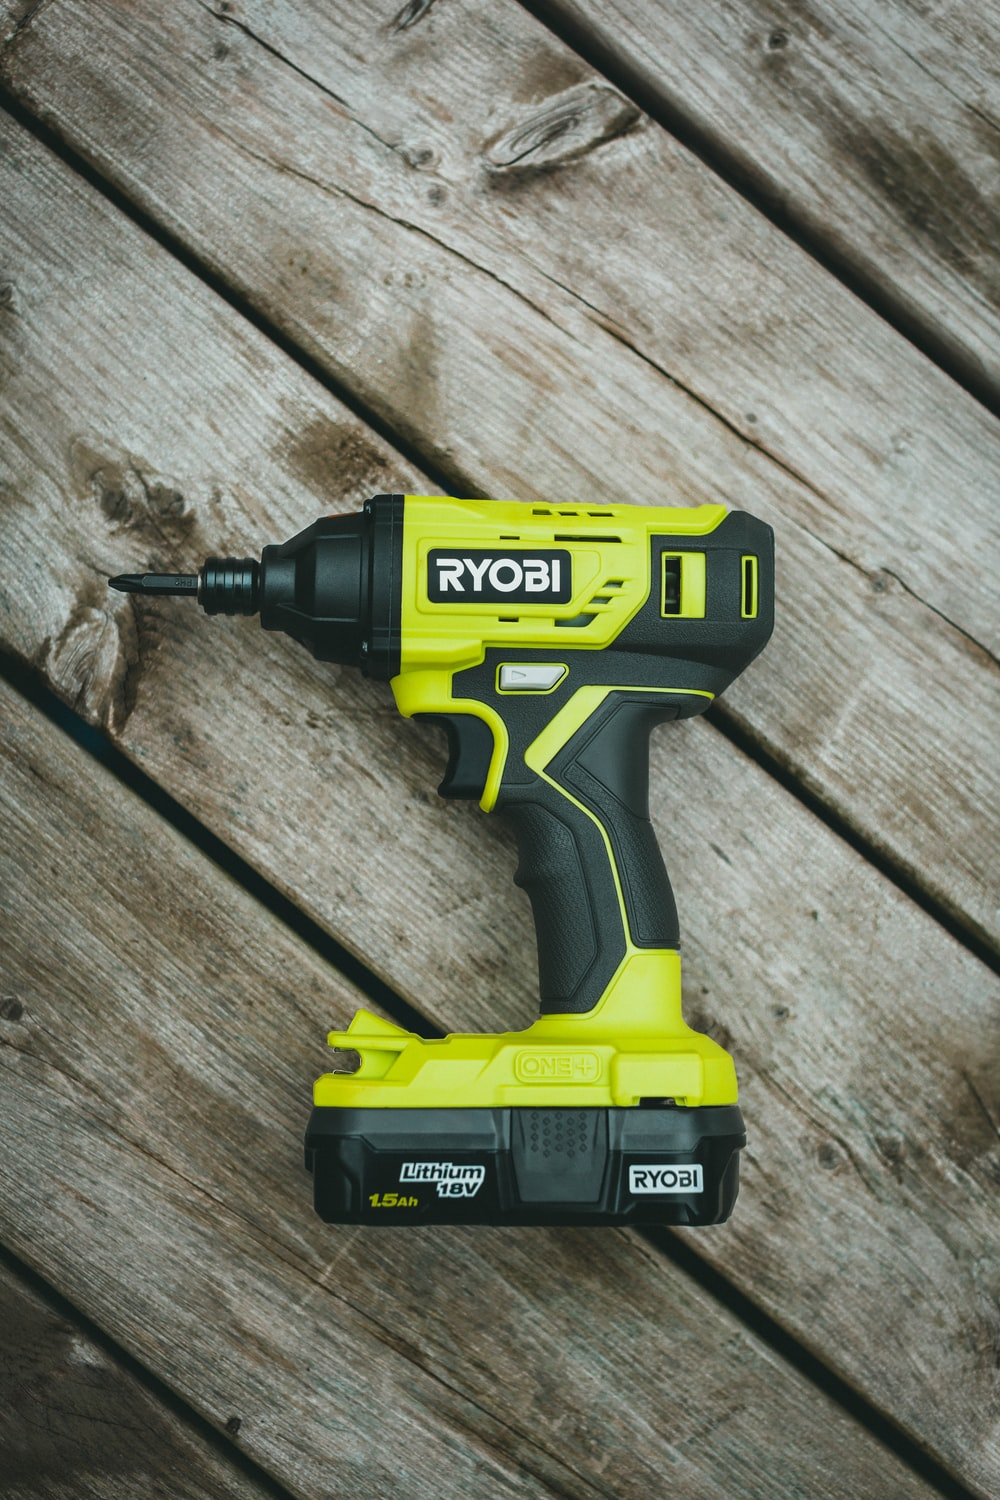 green and black cordless hand drill